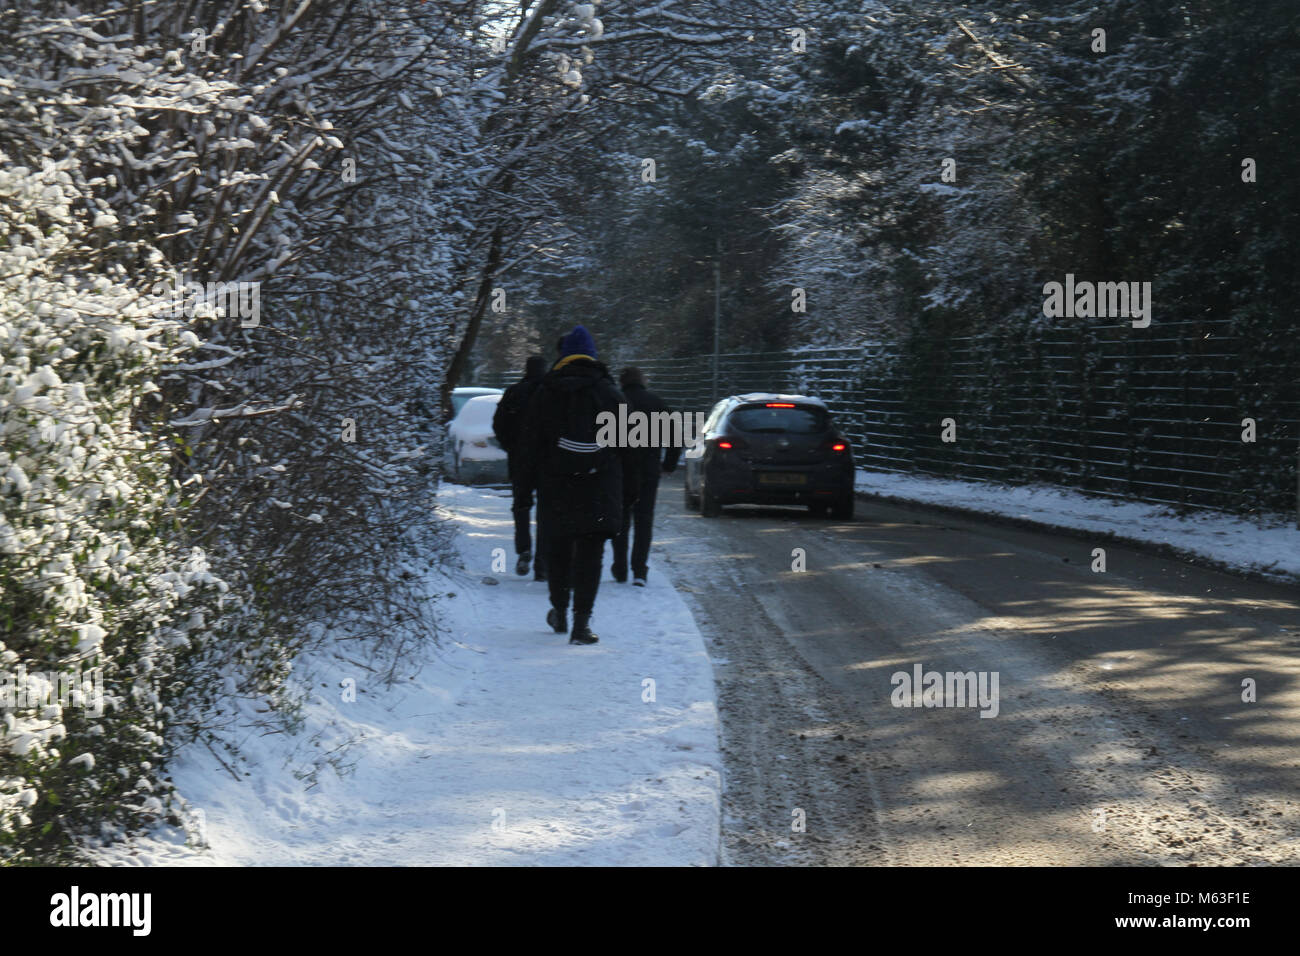 Purfleet, UK - February 28: Pedestrians walk on London Road on 28 February morning following a snowstorm that covered - Stock Image